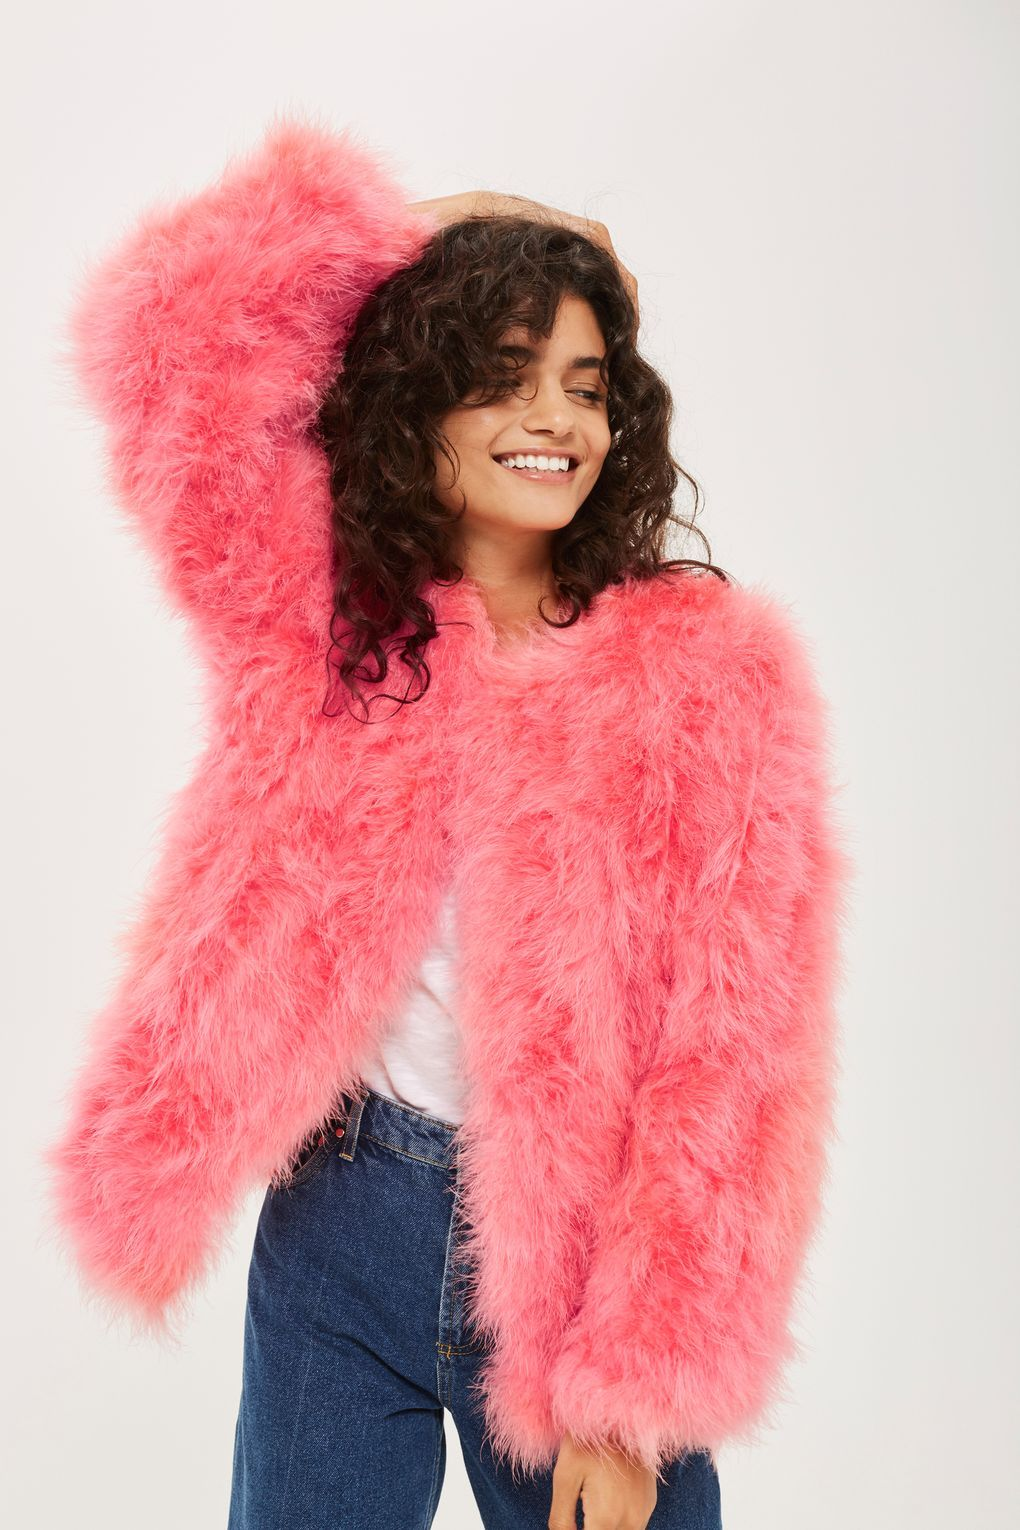 c903a3afabb Buying a fur jacket in summer may seem counterintuitive, but when a hot  pink Marabou feather offering drops at Topshop, we can't resist.